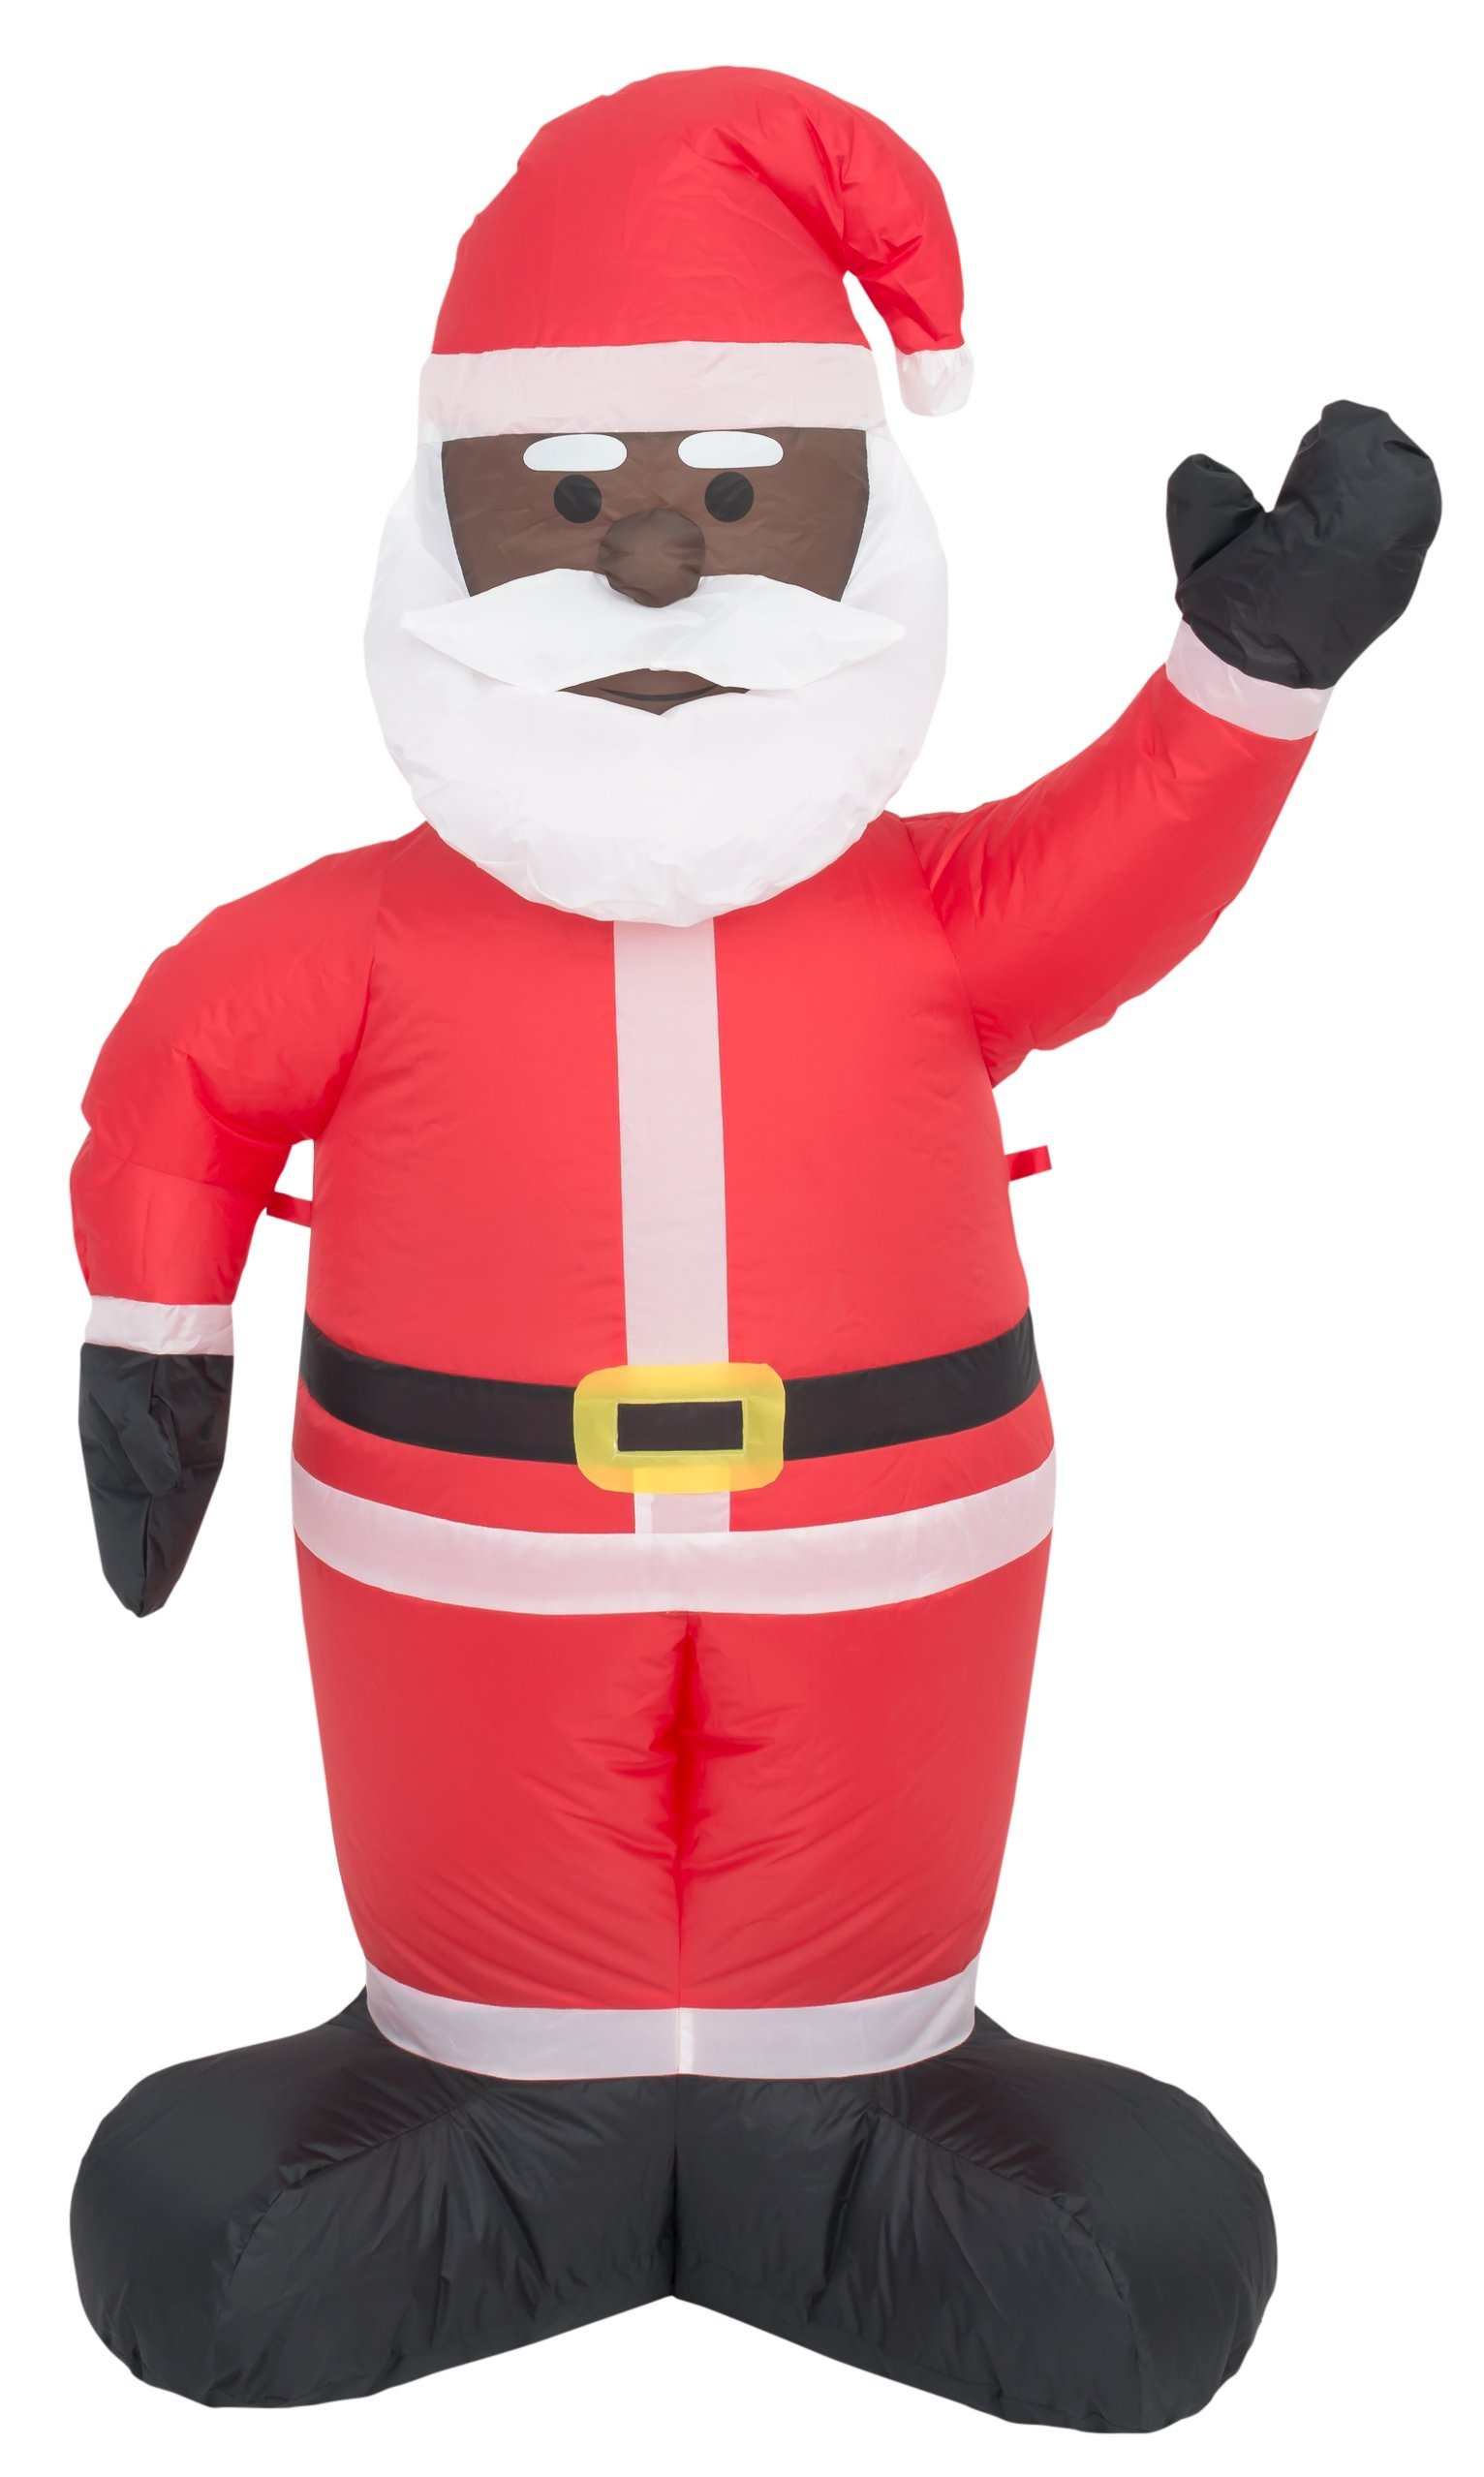 Costume Agent Inflatable Airblown Indoor and Outdoor Christmas Decoration (4 feet, Black Santa)